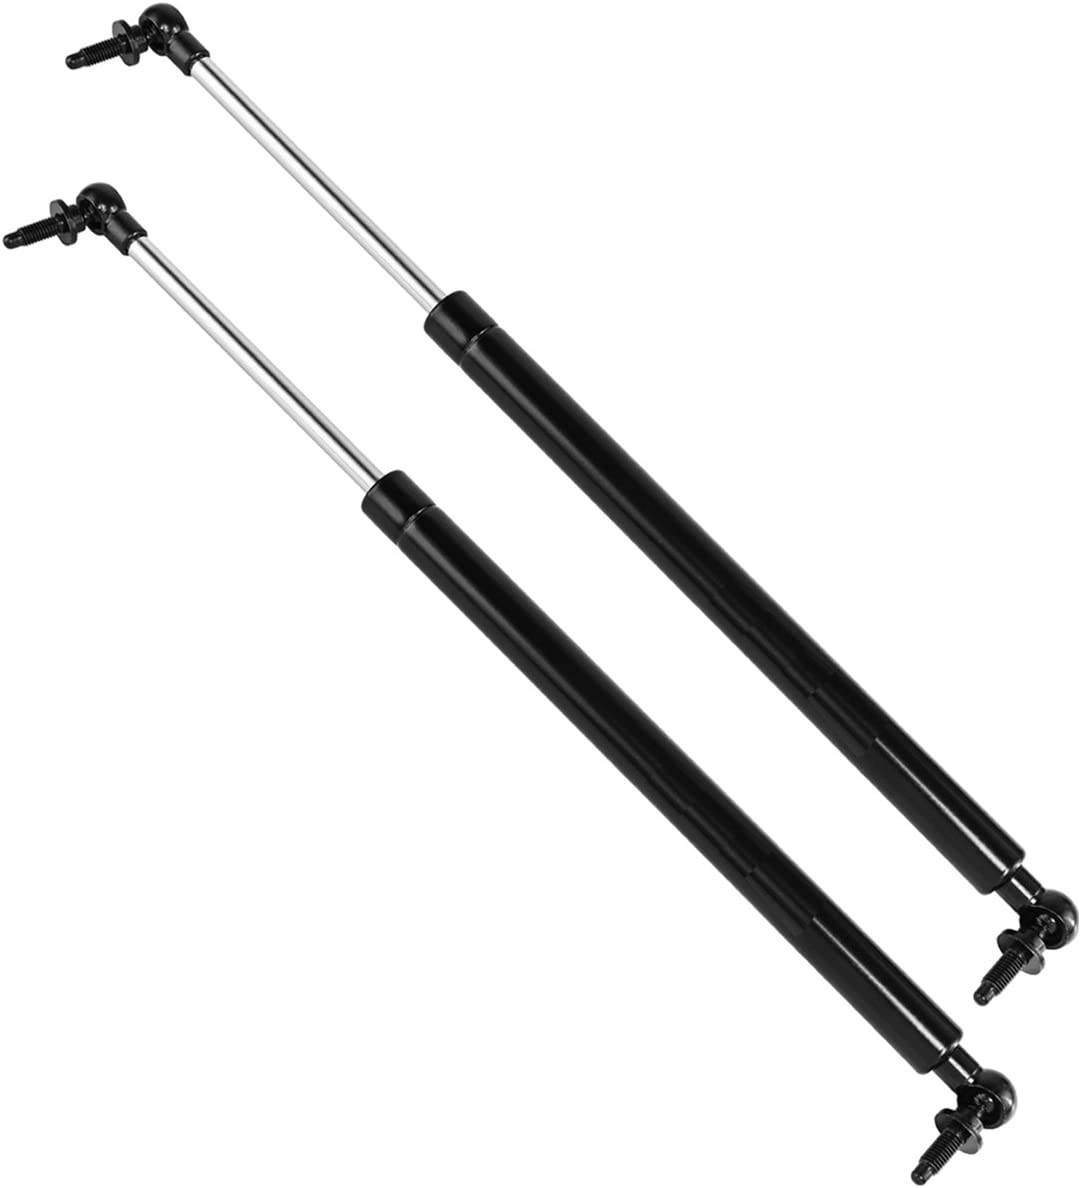 Rear Tailgate Liftgate Charged Lift Supports Struts Shocks 4564 for 2001-2008 PT Cruiser,Pack of 2